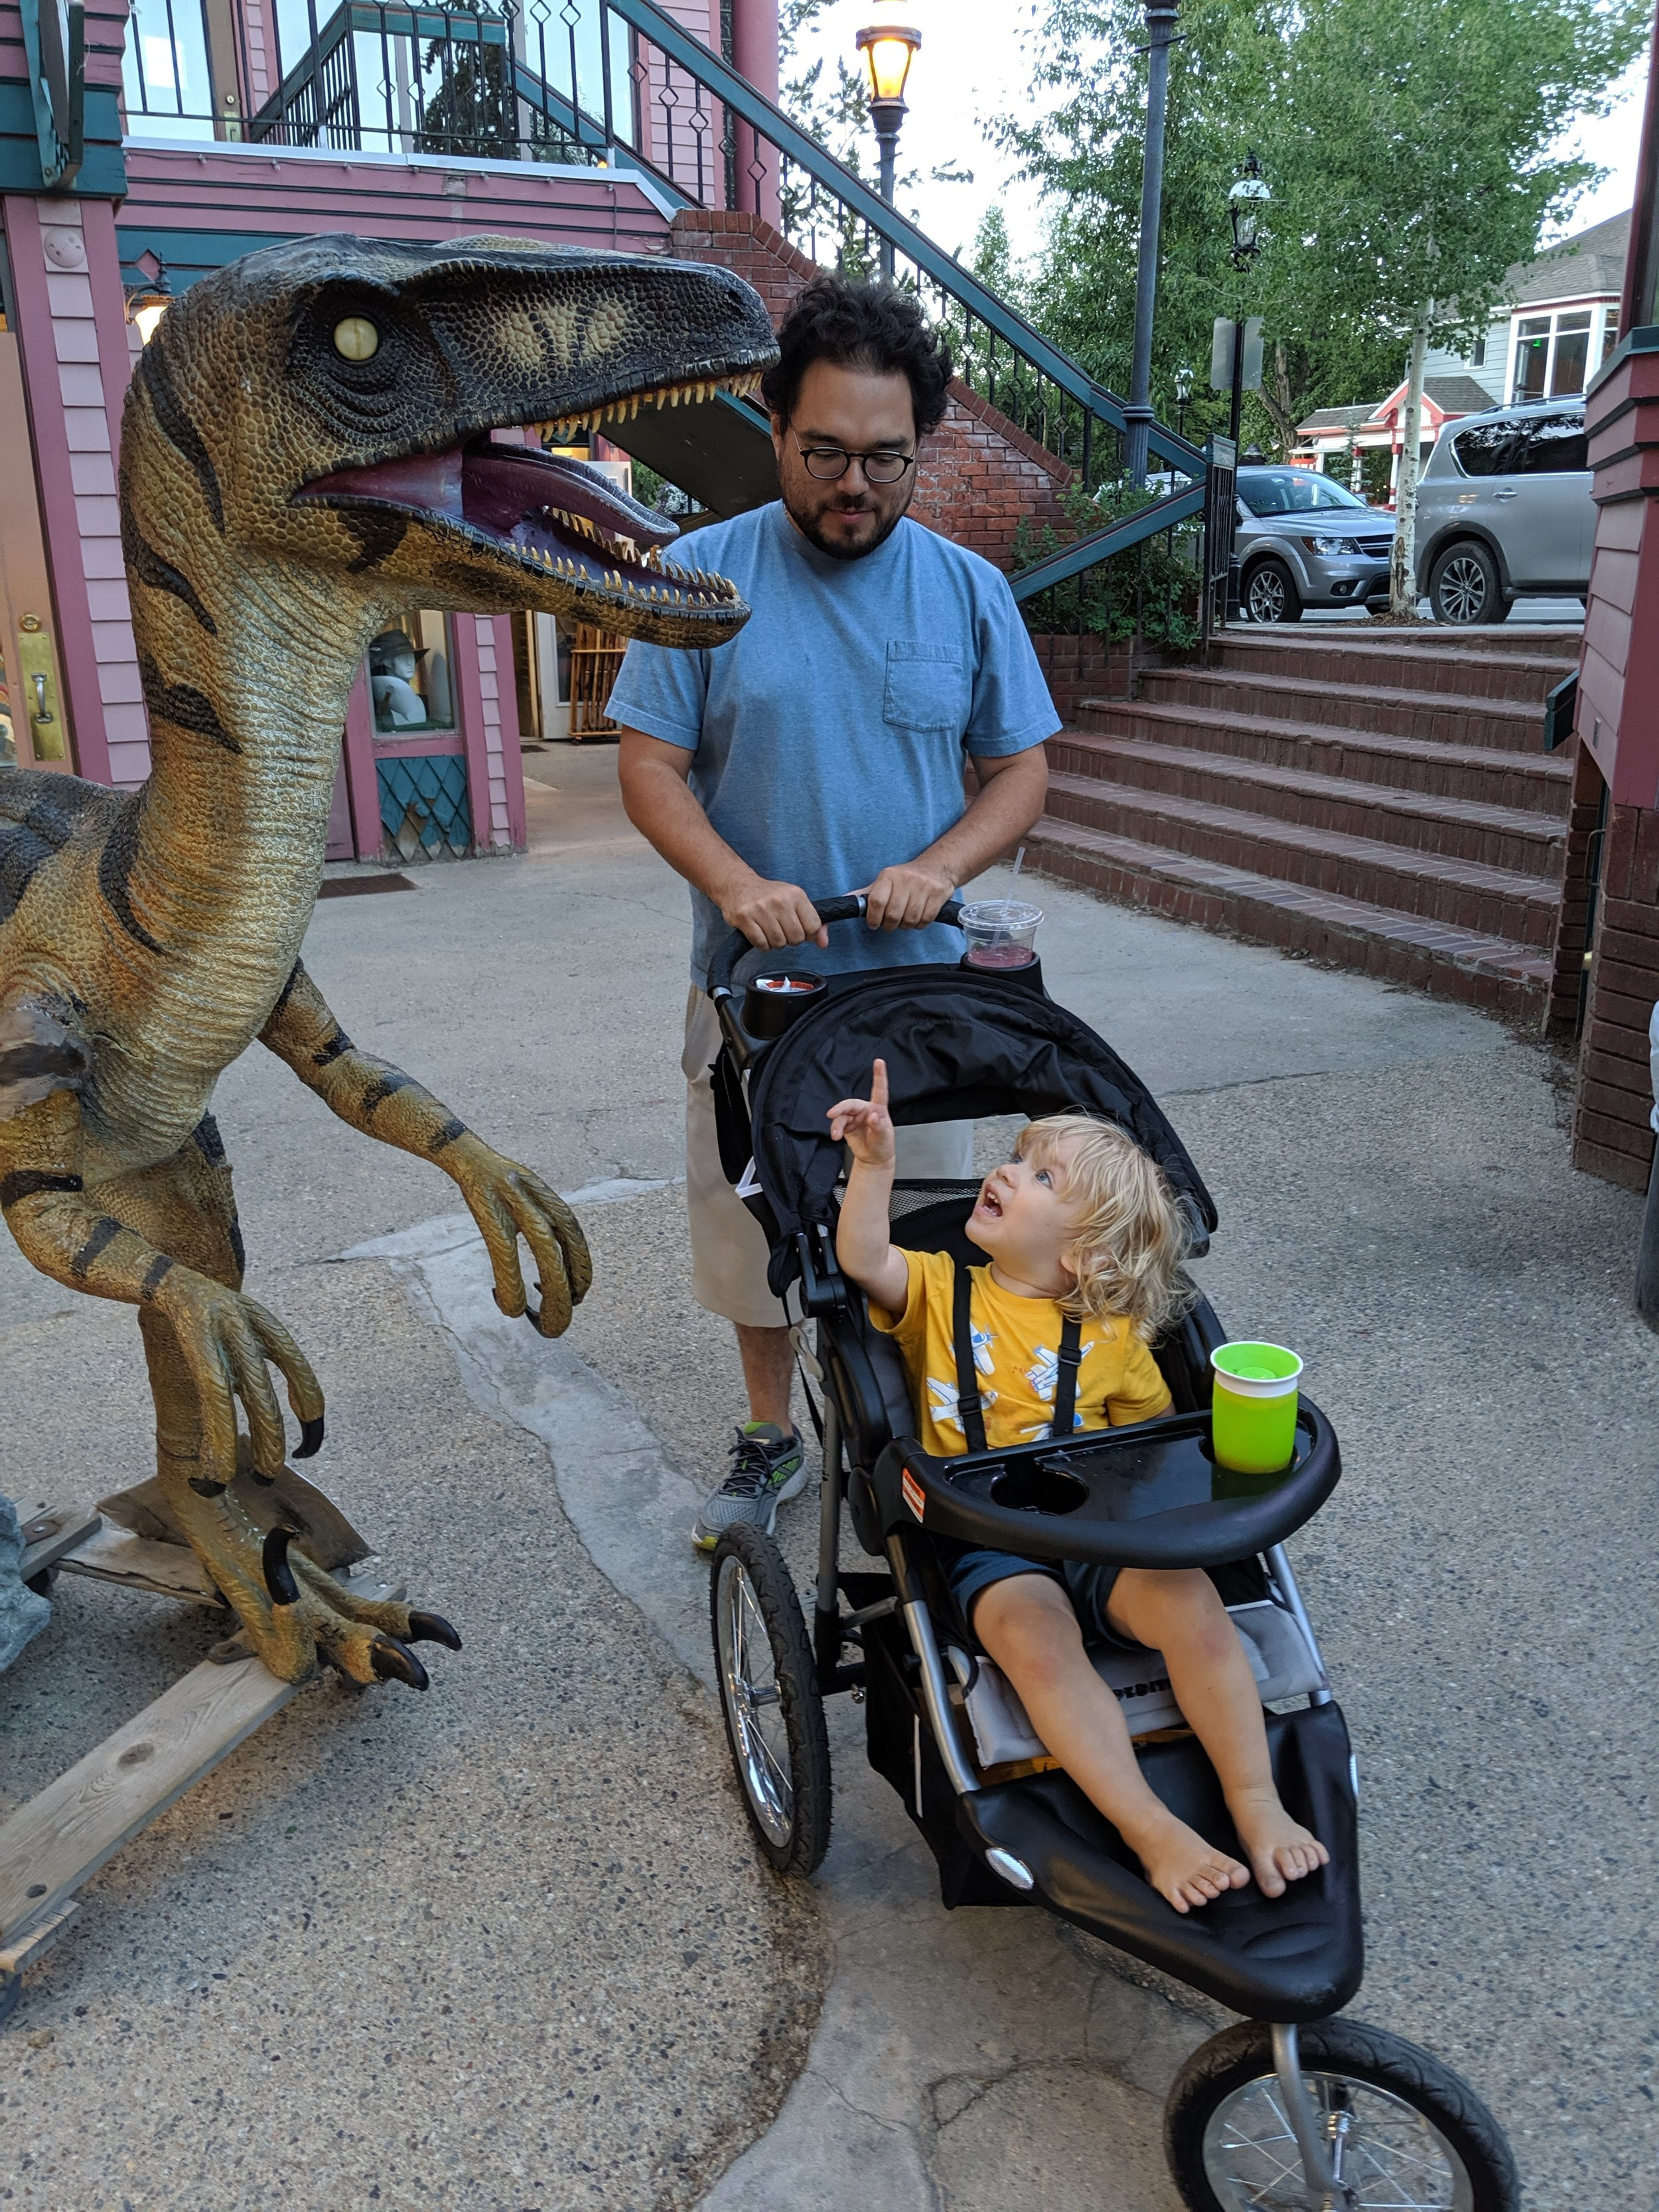 Gus saying goodbye to a dinosaur outside Nature's Own in Breckenridge, Colorado.